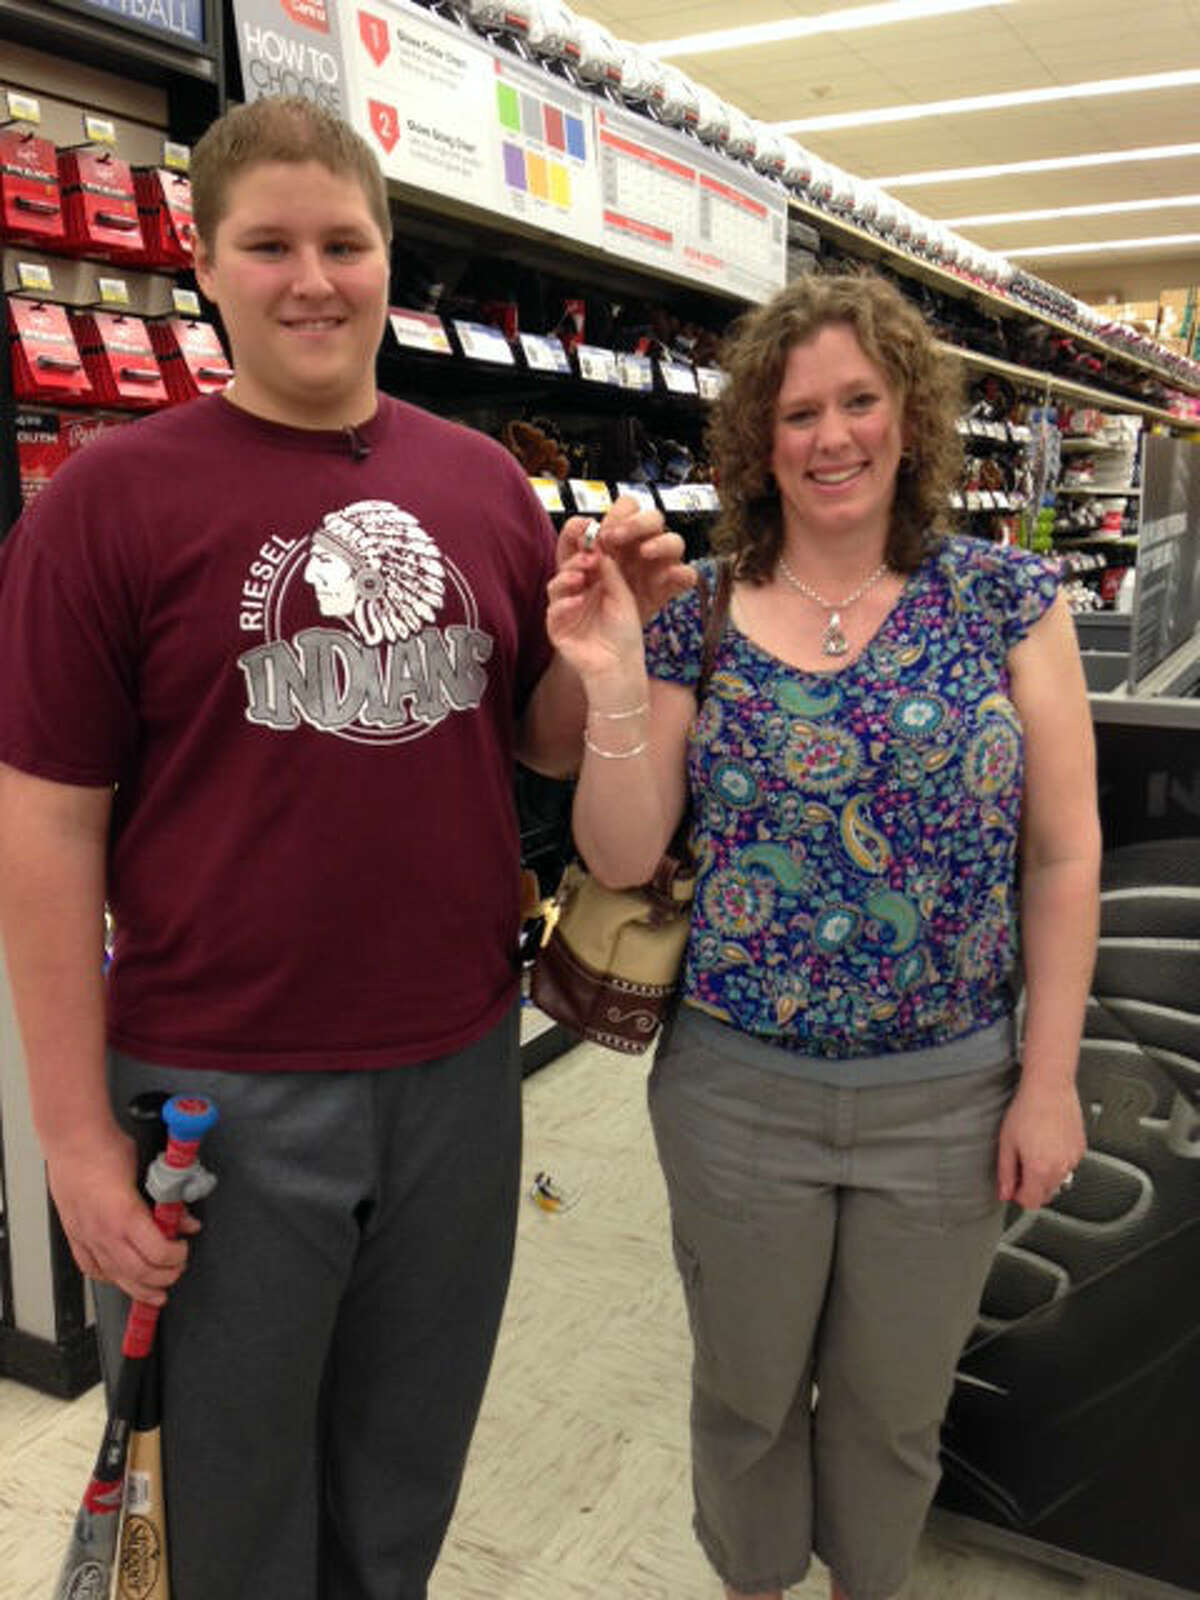 Ryan Alexander, left, and Rebecca Rumsey show the wedding ring he found in his new baseball glove.